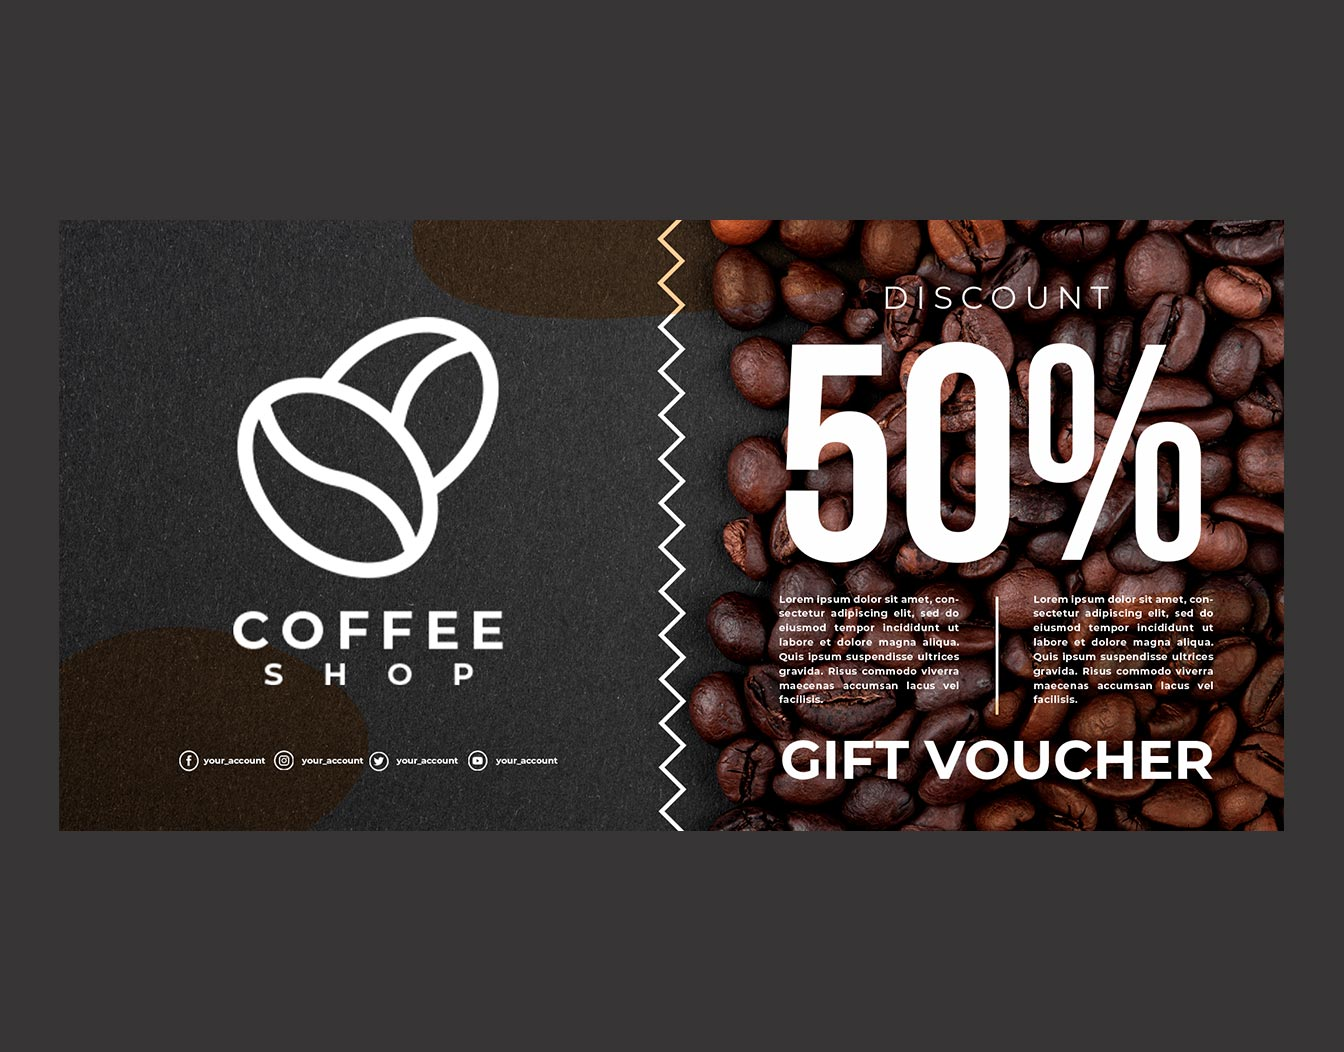 Dark coffee shop gift voucher on dark background